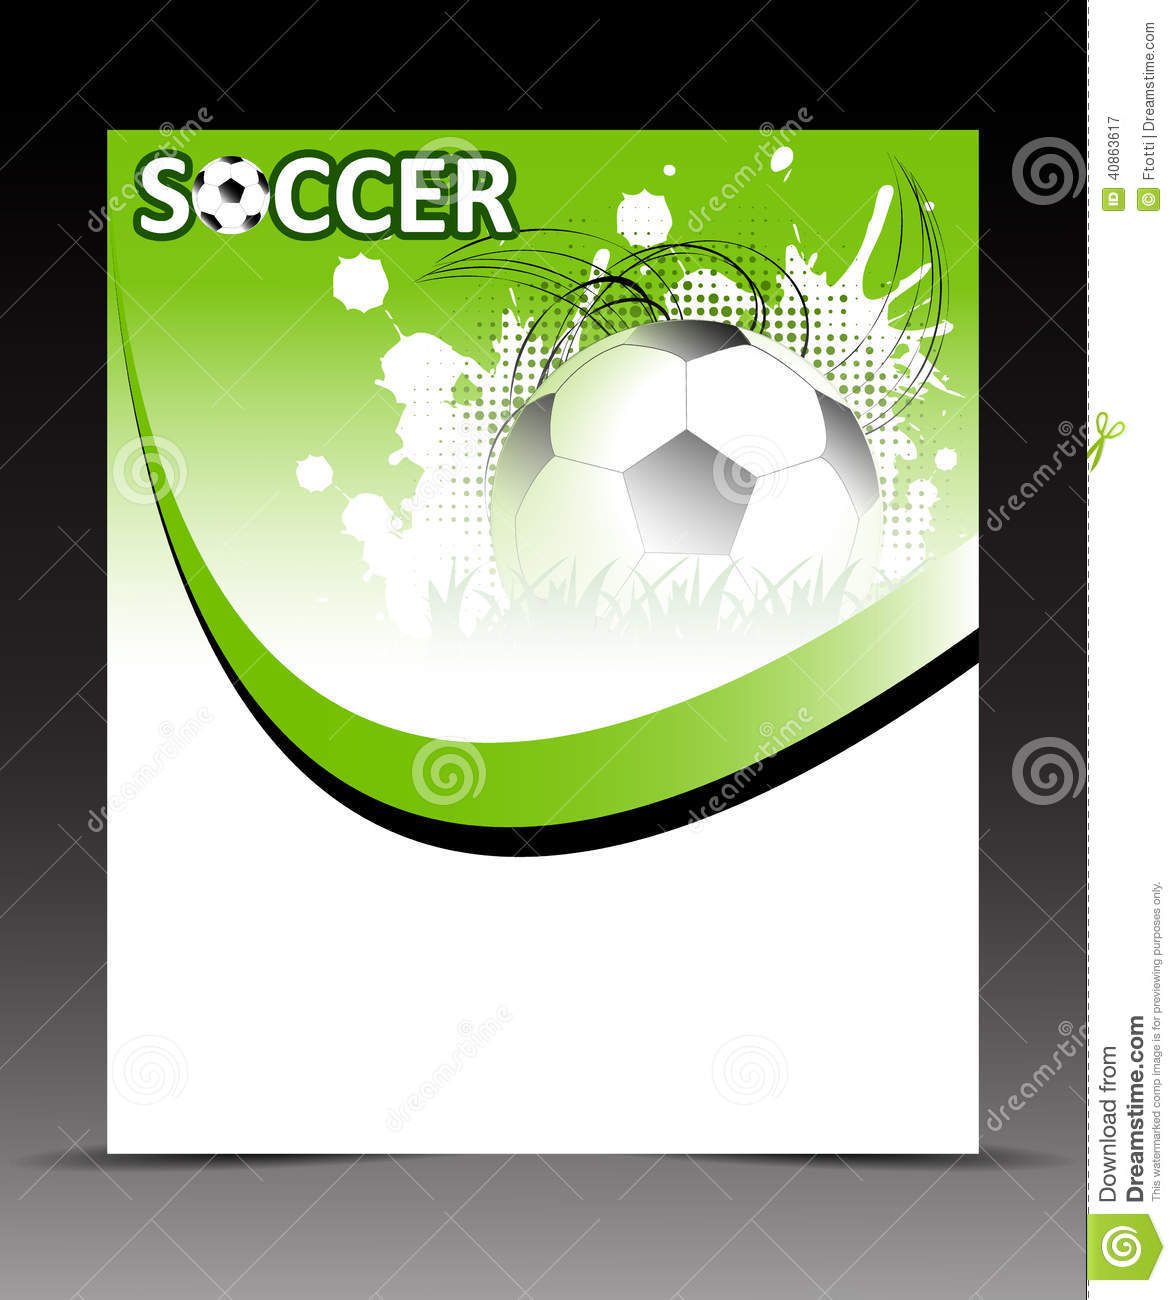 Football Flyer Templates Microsoft Word Commonpenceco Template Flyer Soccer  Ball Abstract Background Design Place Your Content